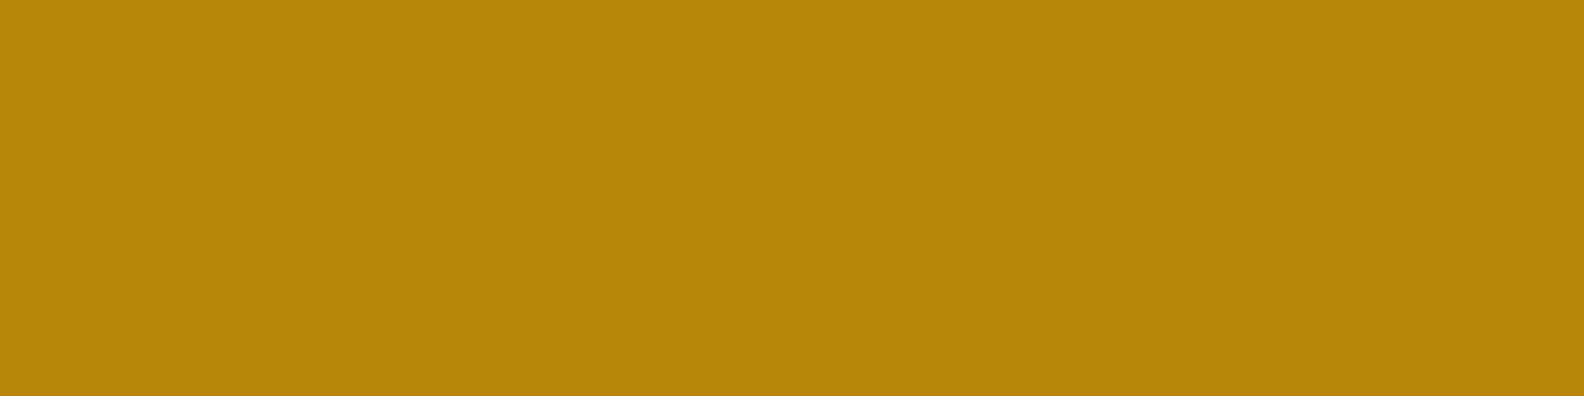 1584x396 Dark Goldenrod Solid Color Background